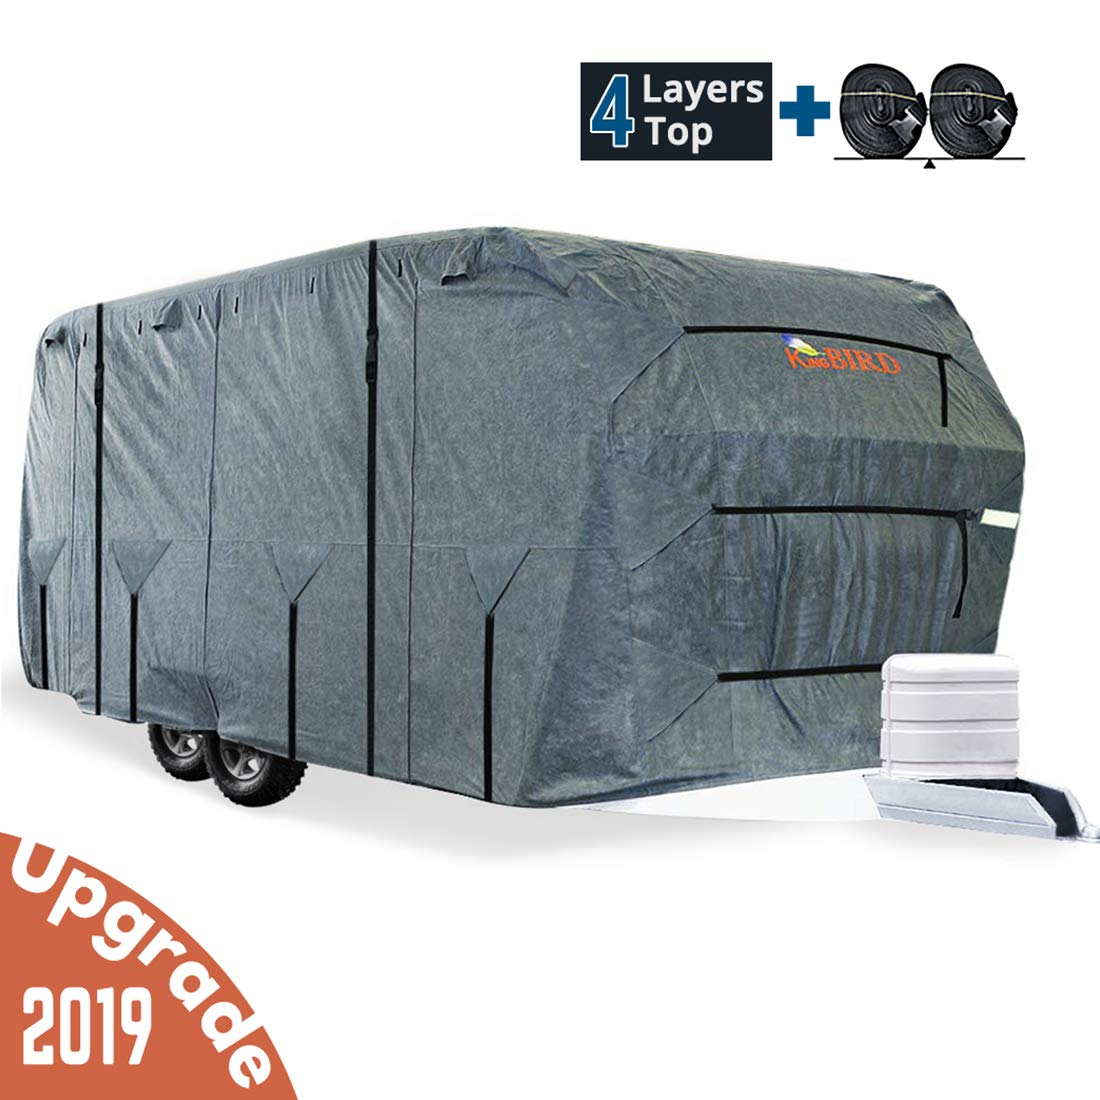 KING BIRD Extra-Thick 4-Ply Top Panel & Extra 2Pcs Reinforced Straps, Deluxe Camper Travel Trailer Cover, Fits 27'- 30' RV Cover -Breathable Water-Repellent Anti-UV with Storage Bag&Tire Covers by KING BIRD